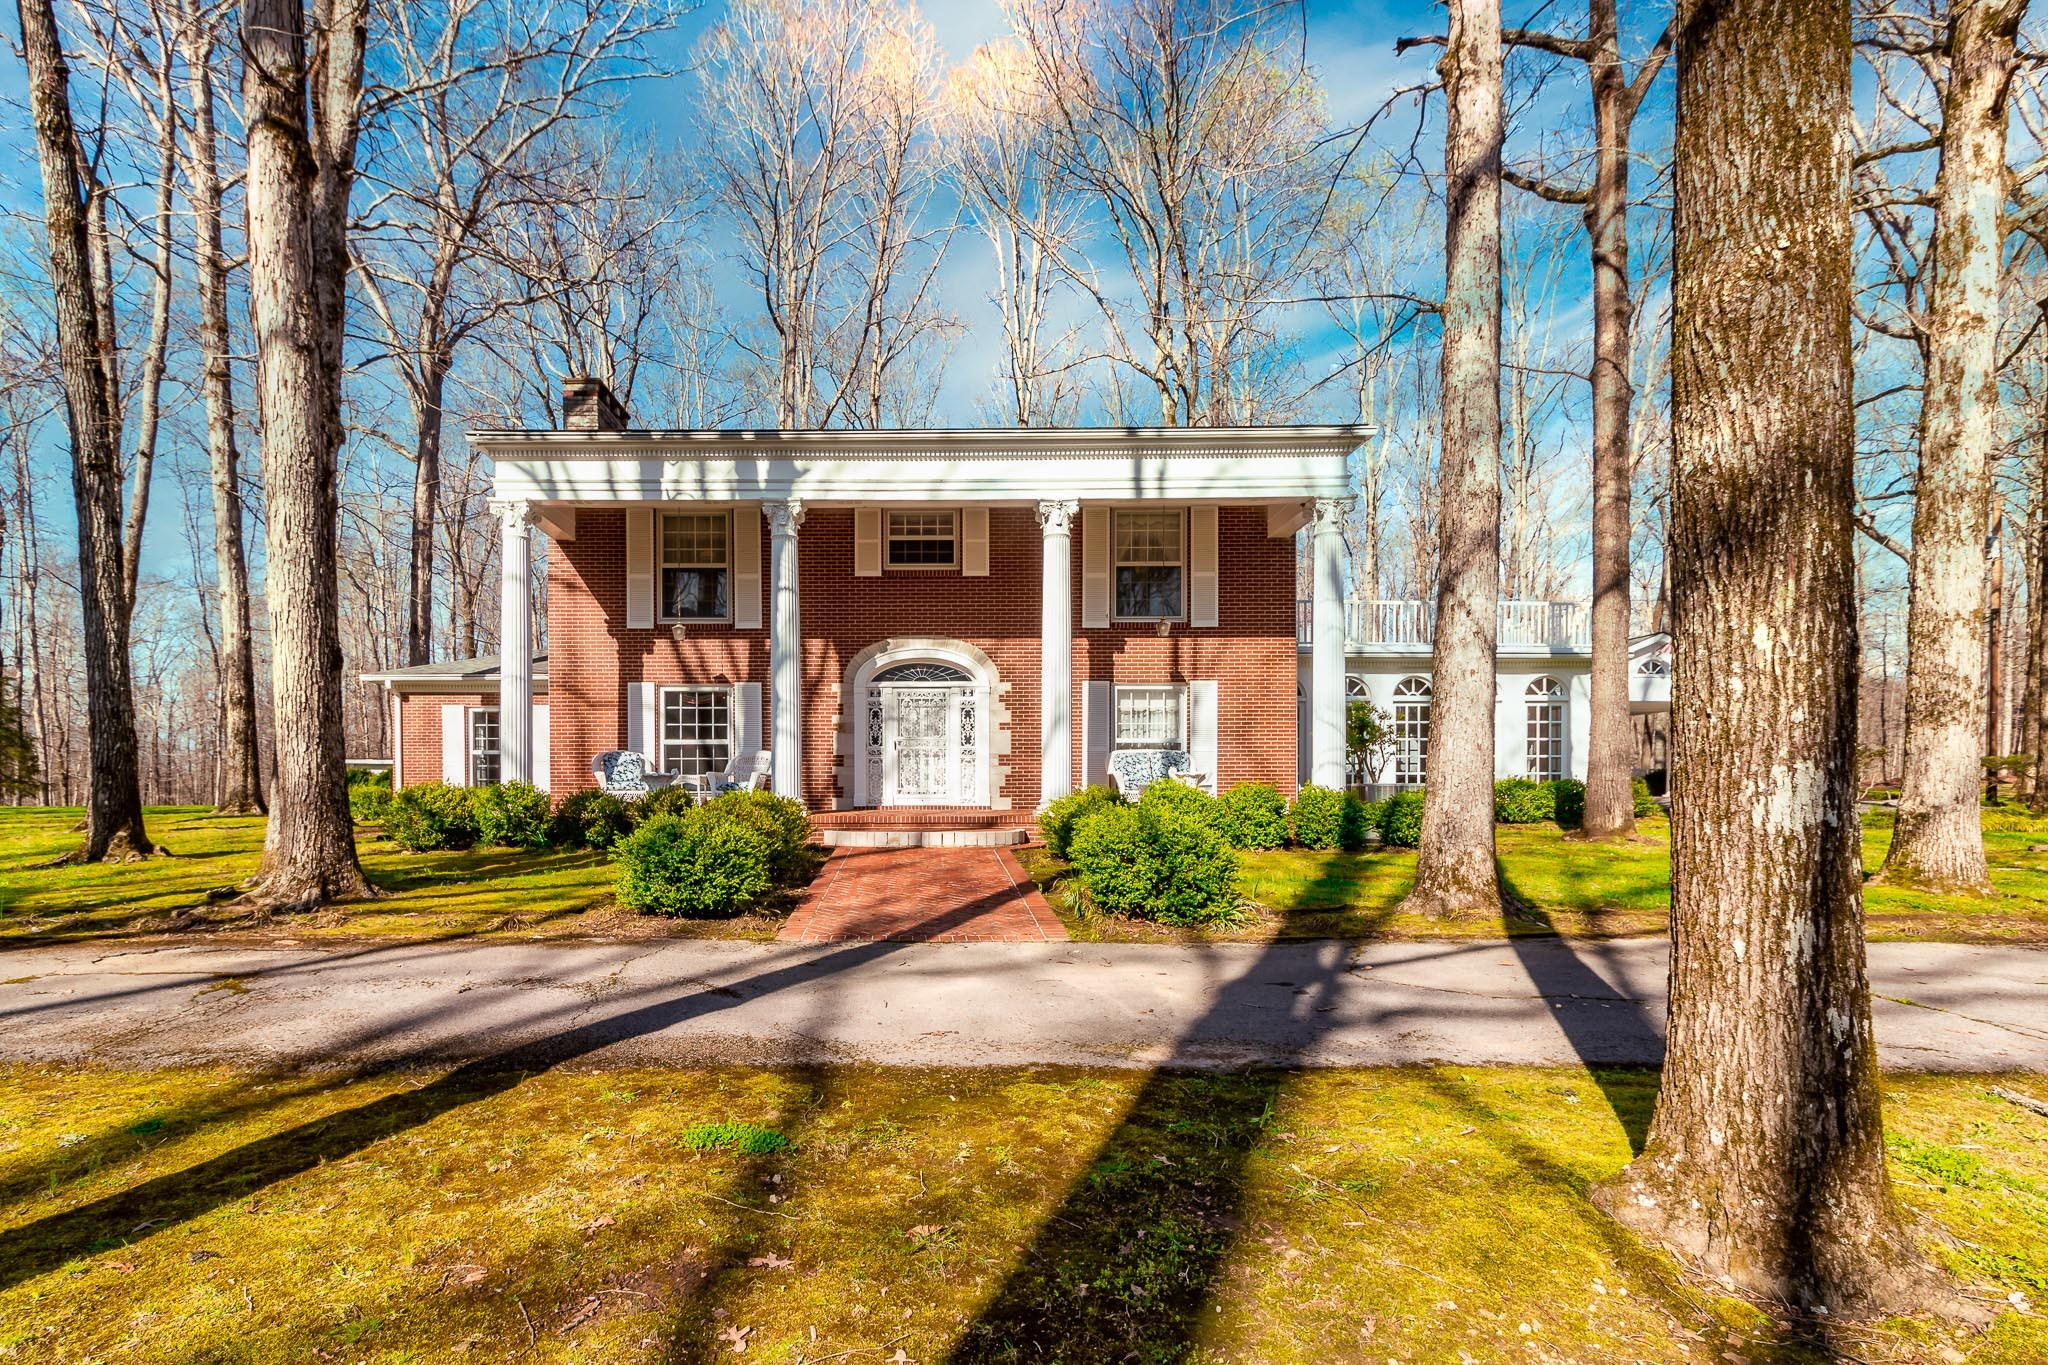 501 Riddle Ln Property Photo - Loretto, TN real estate listing